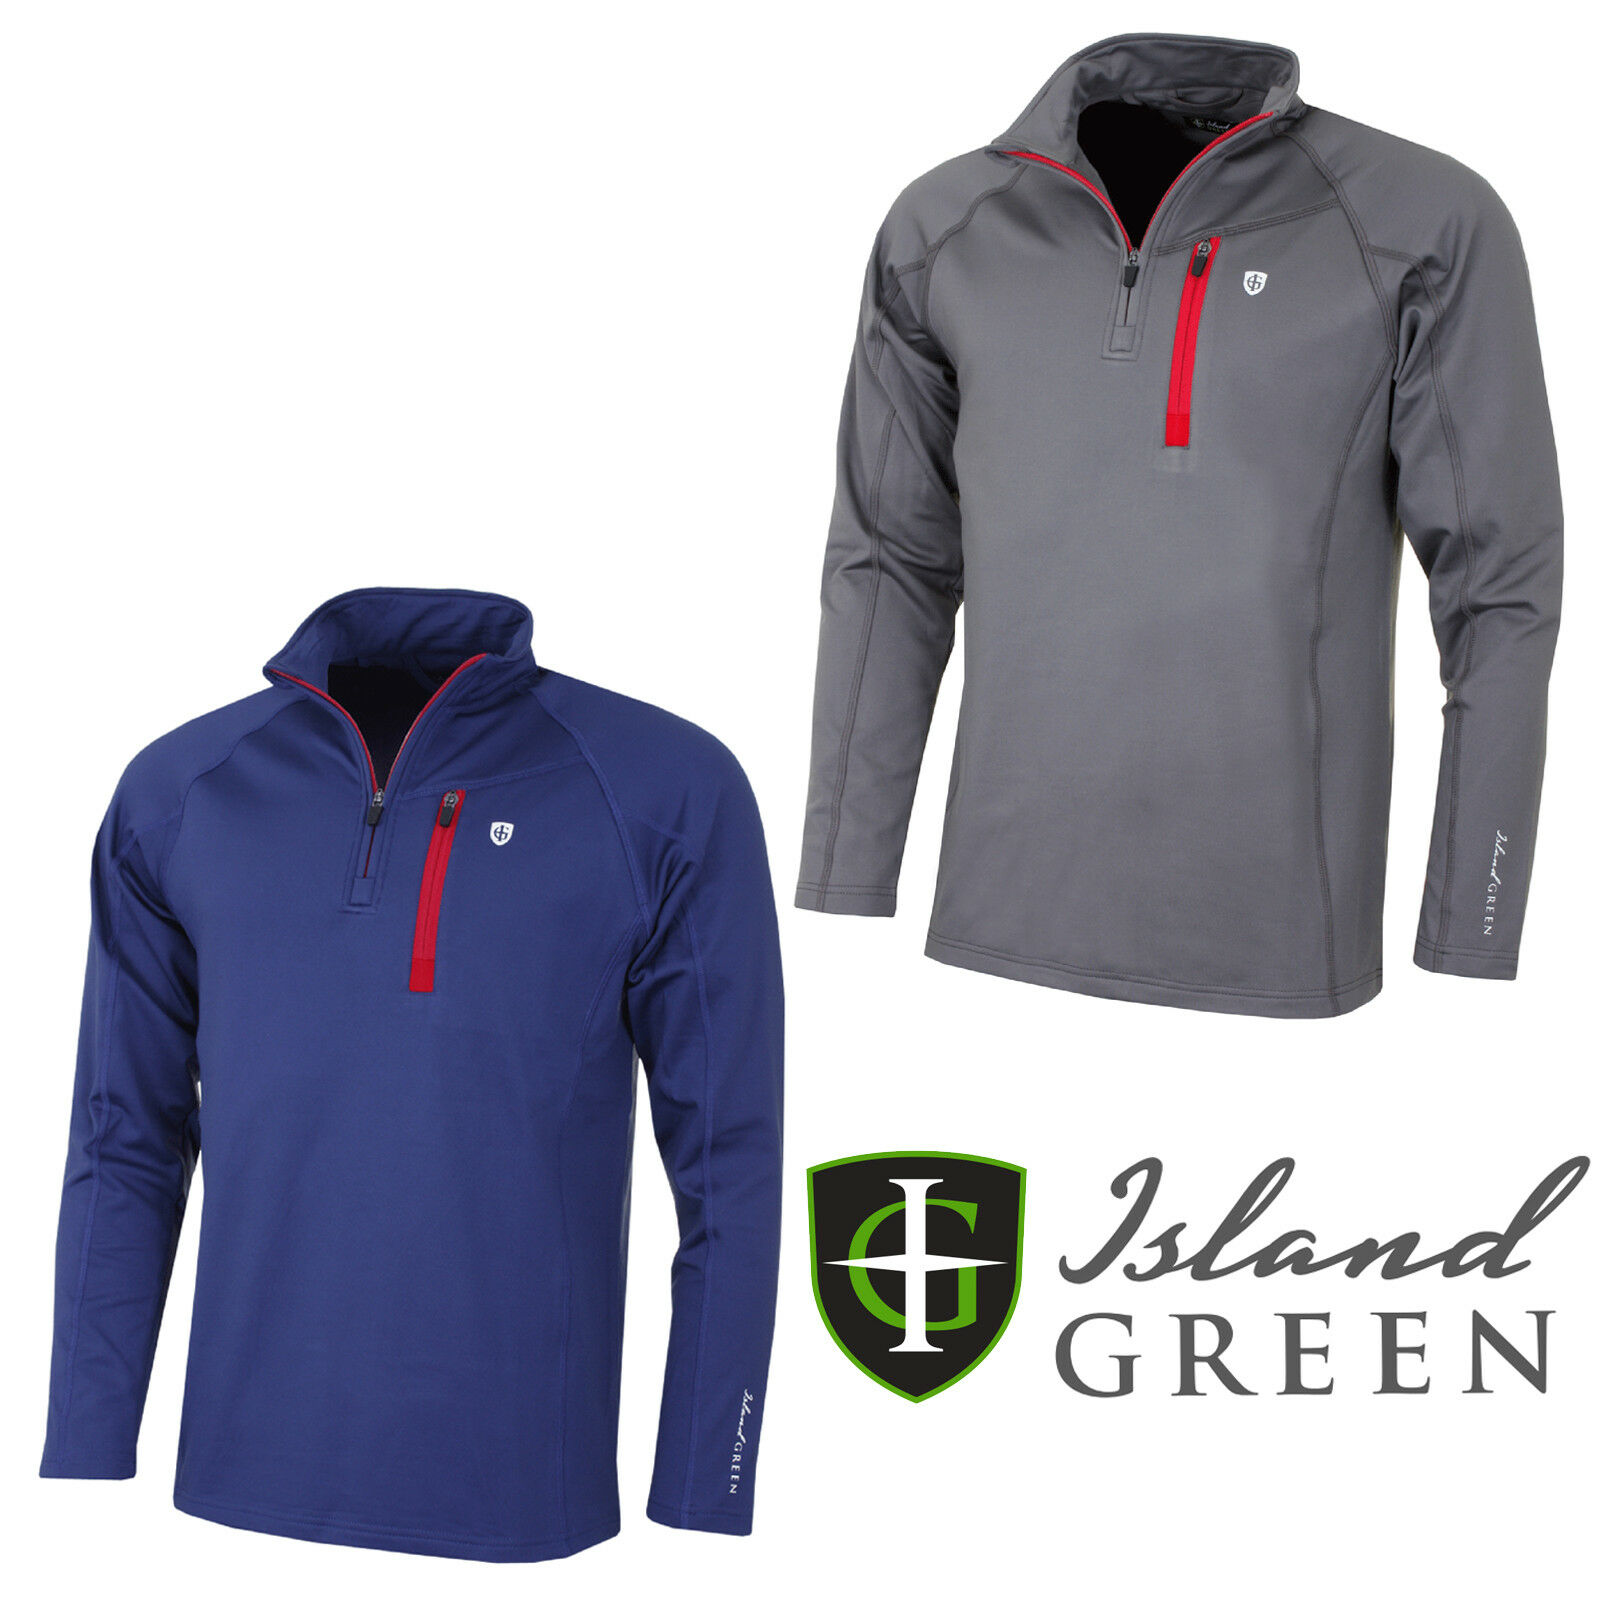 Island Green Mens Casual Thermal 1//4 Zip Pullover Mid Layer Jacket IGMID1721